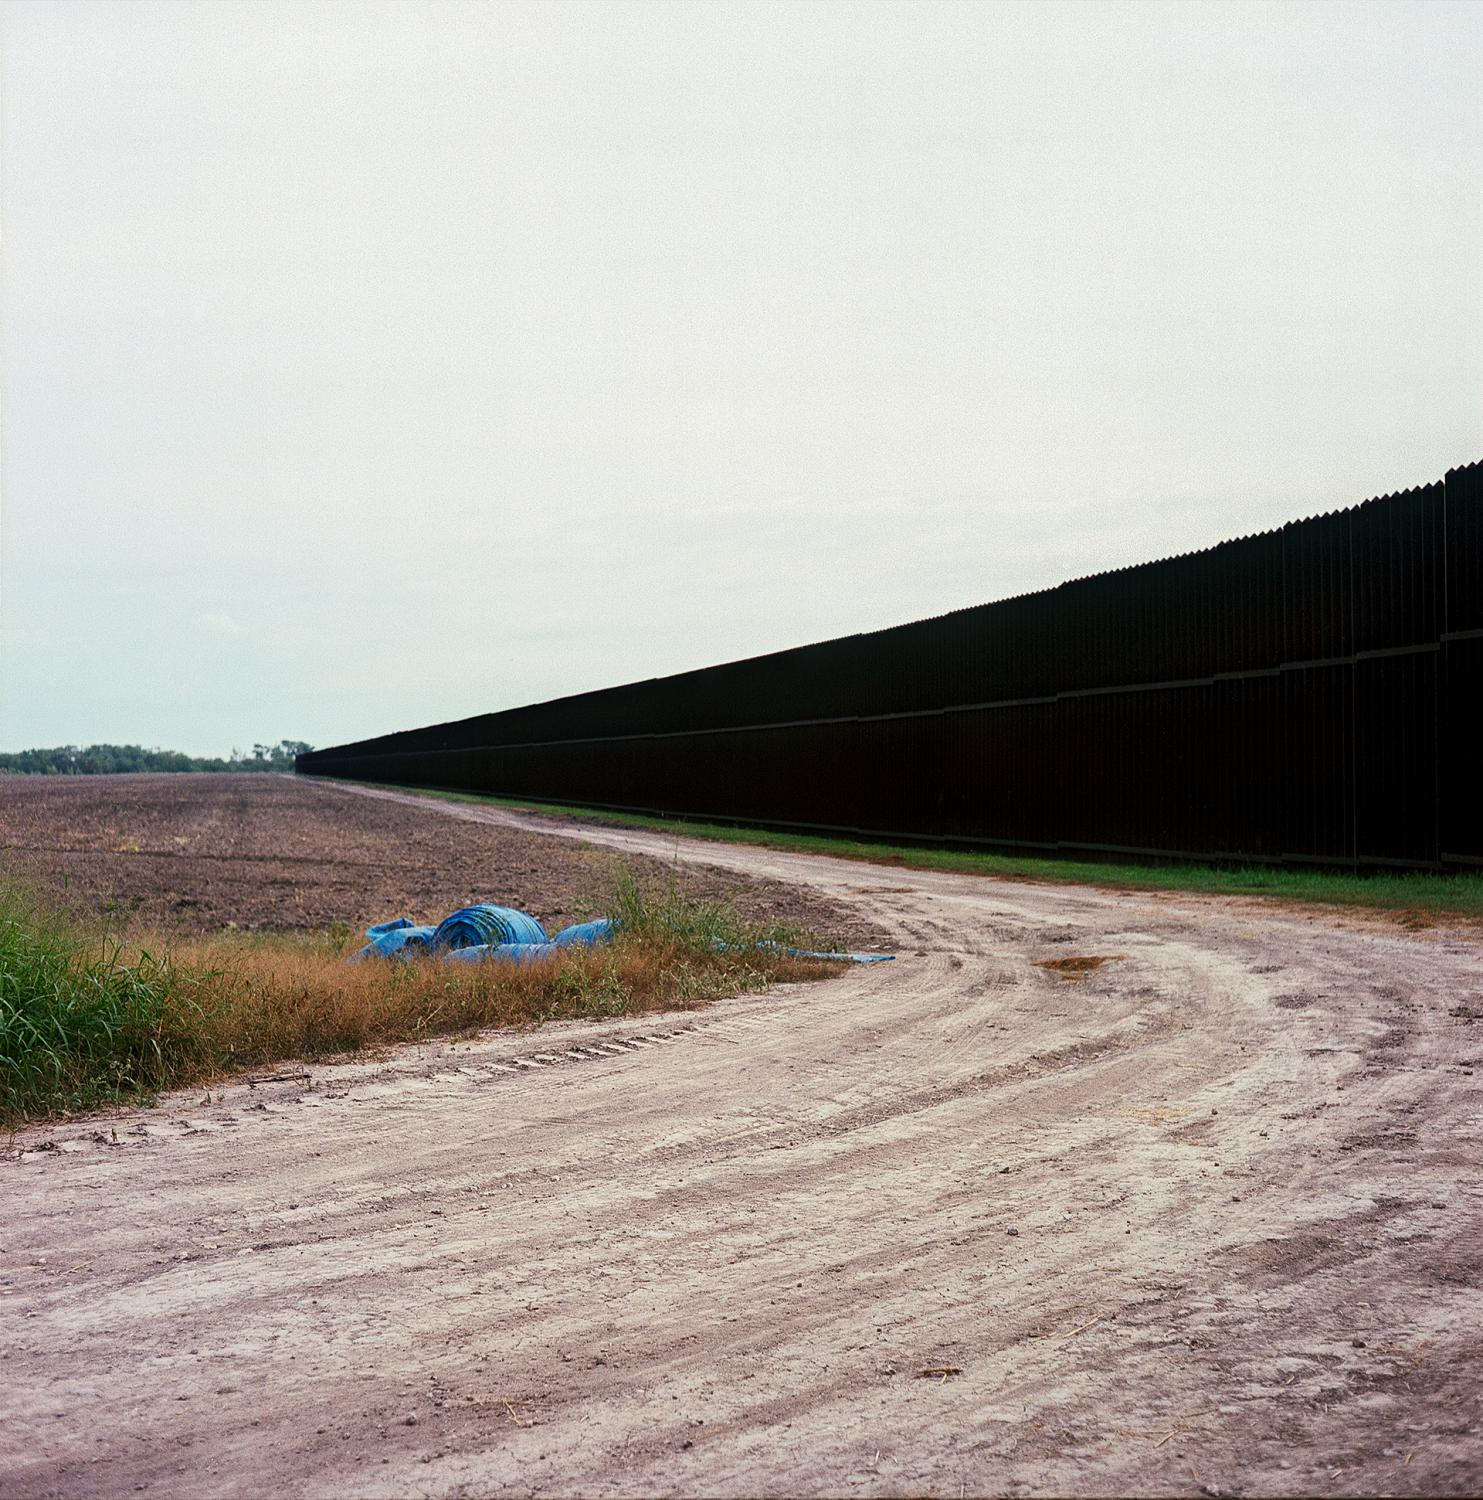 Brownsville, TX - OCTOBER 16, 2020: A dirt road paralleling the U.S.-Mexico border fence.